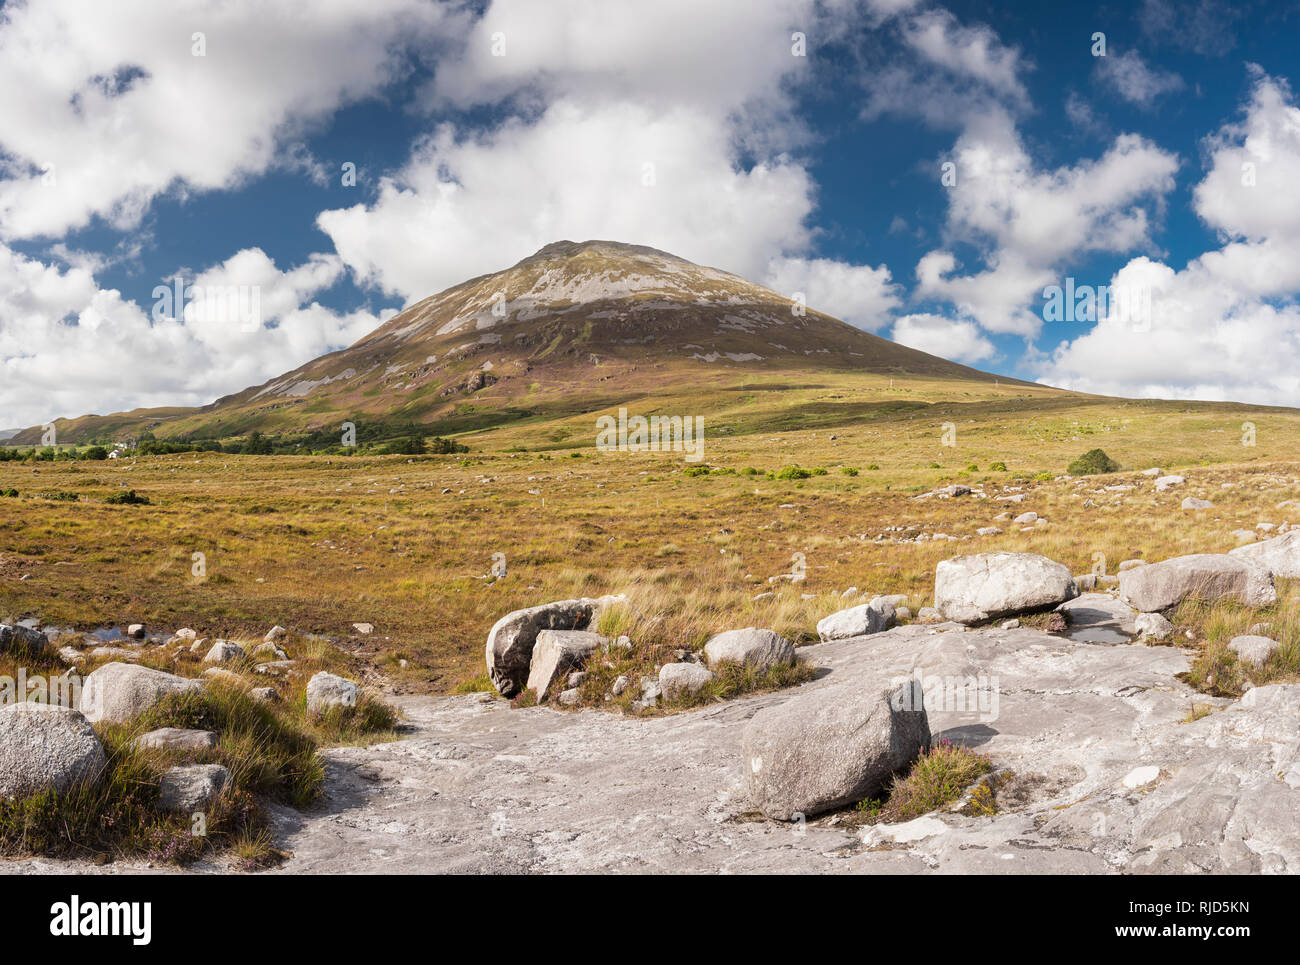 Looking towards Mount Errigal, one of Ireland's most iconic mountains, from outcrop of Main Donegal Granite near Dunlewy, County Donegal, Ireland - Stock Image